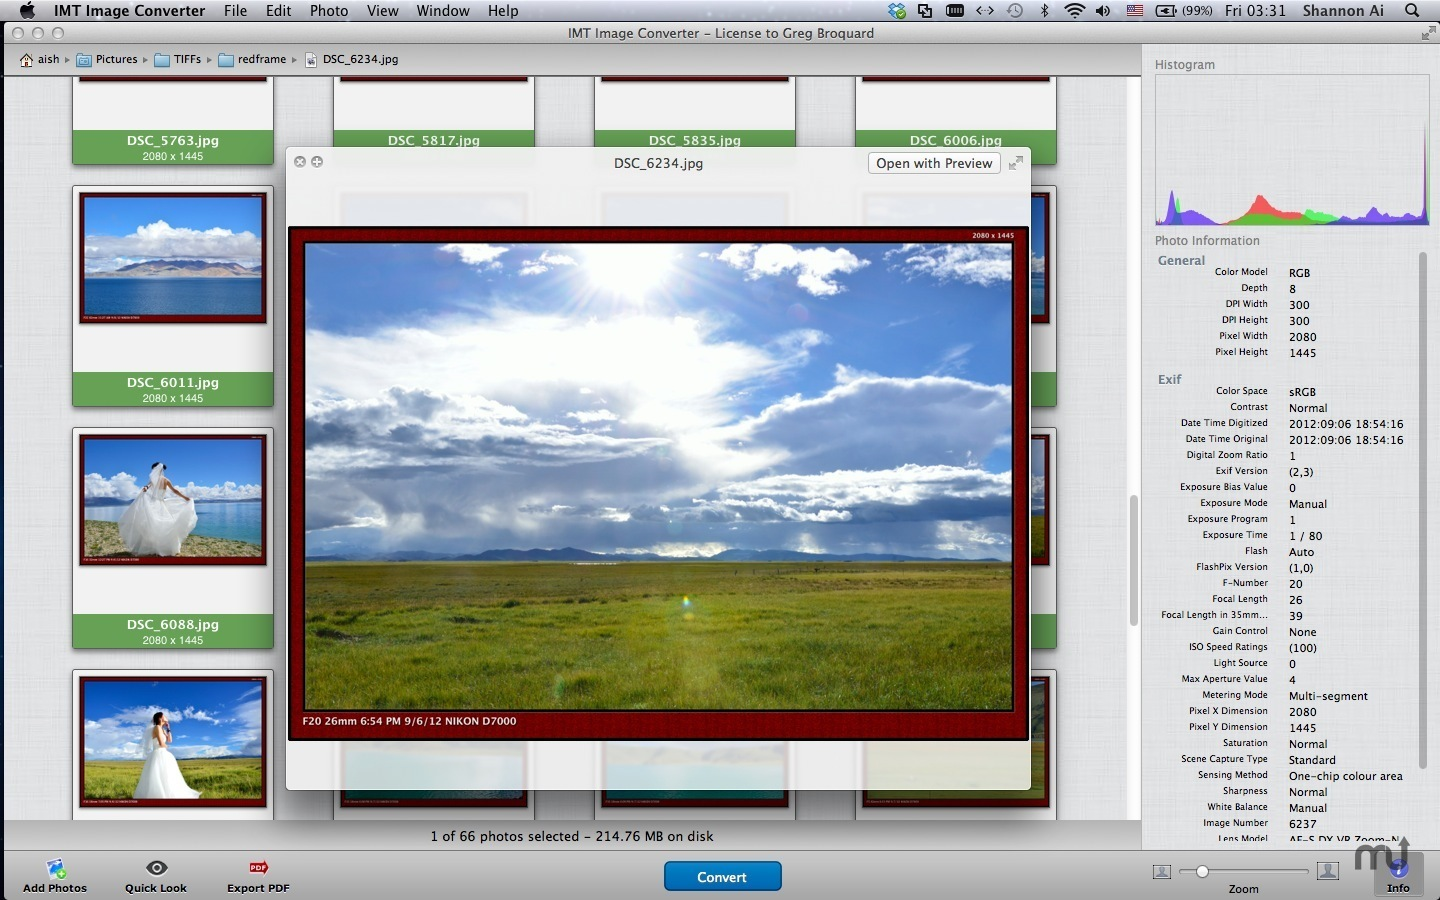 Screenshot 2 for IMT Image Converter